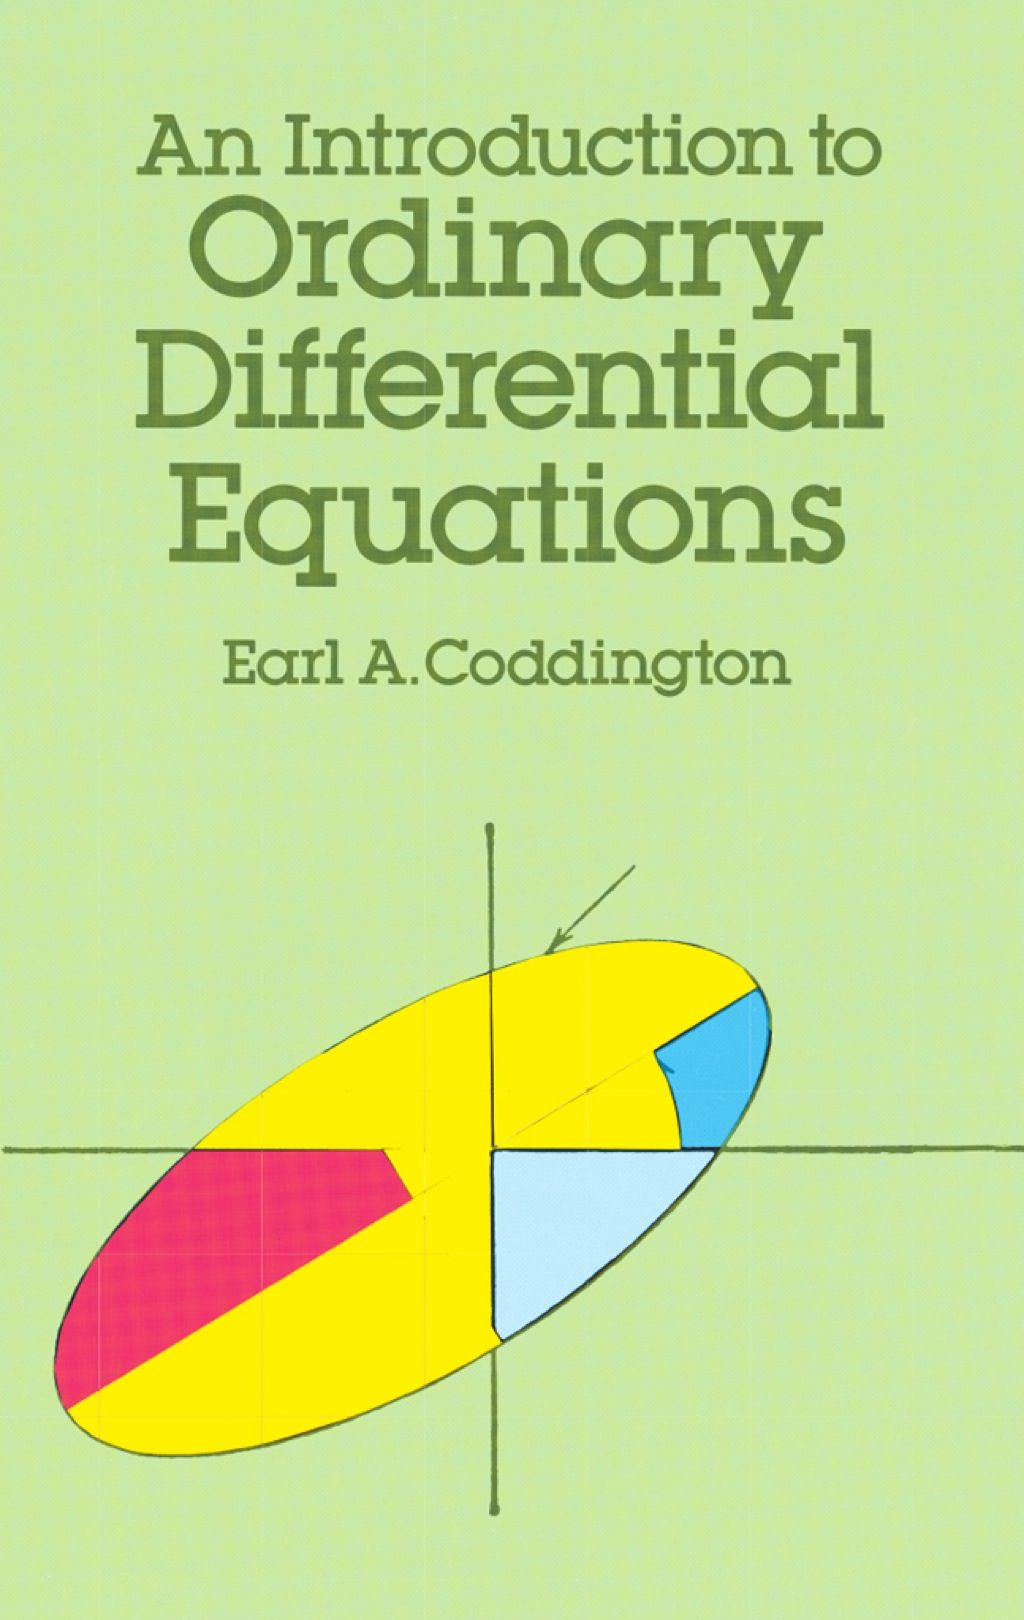 An Introduction To Ordinary Differential Equations Ebook Differential Equations Equations Math Books